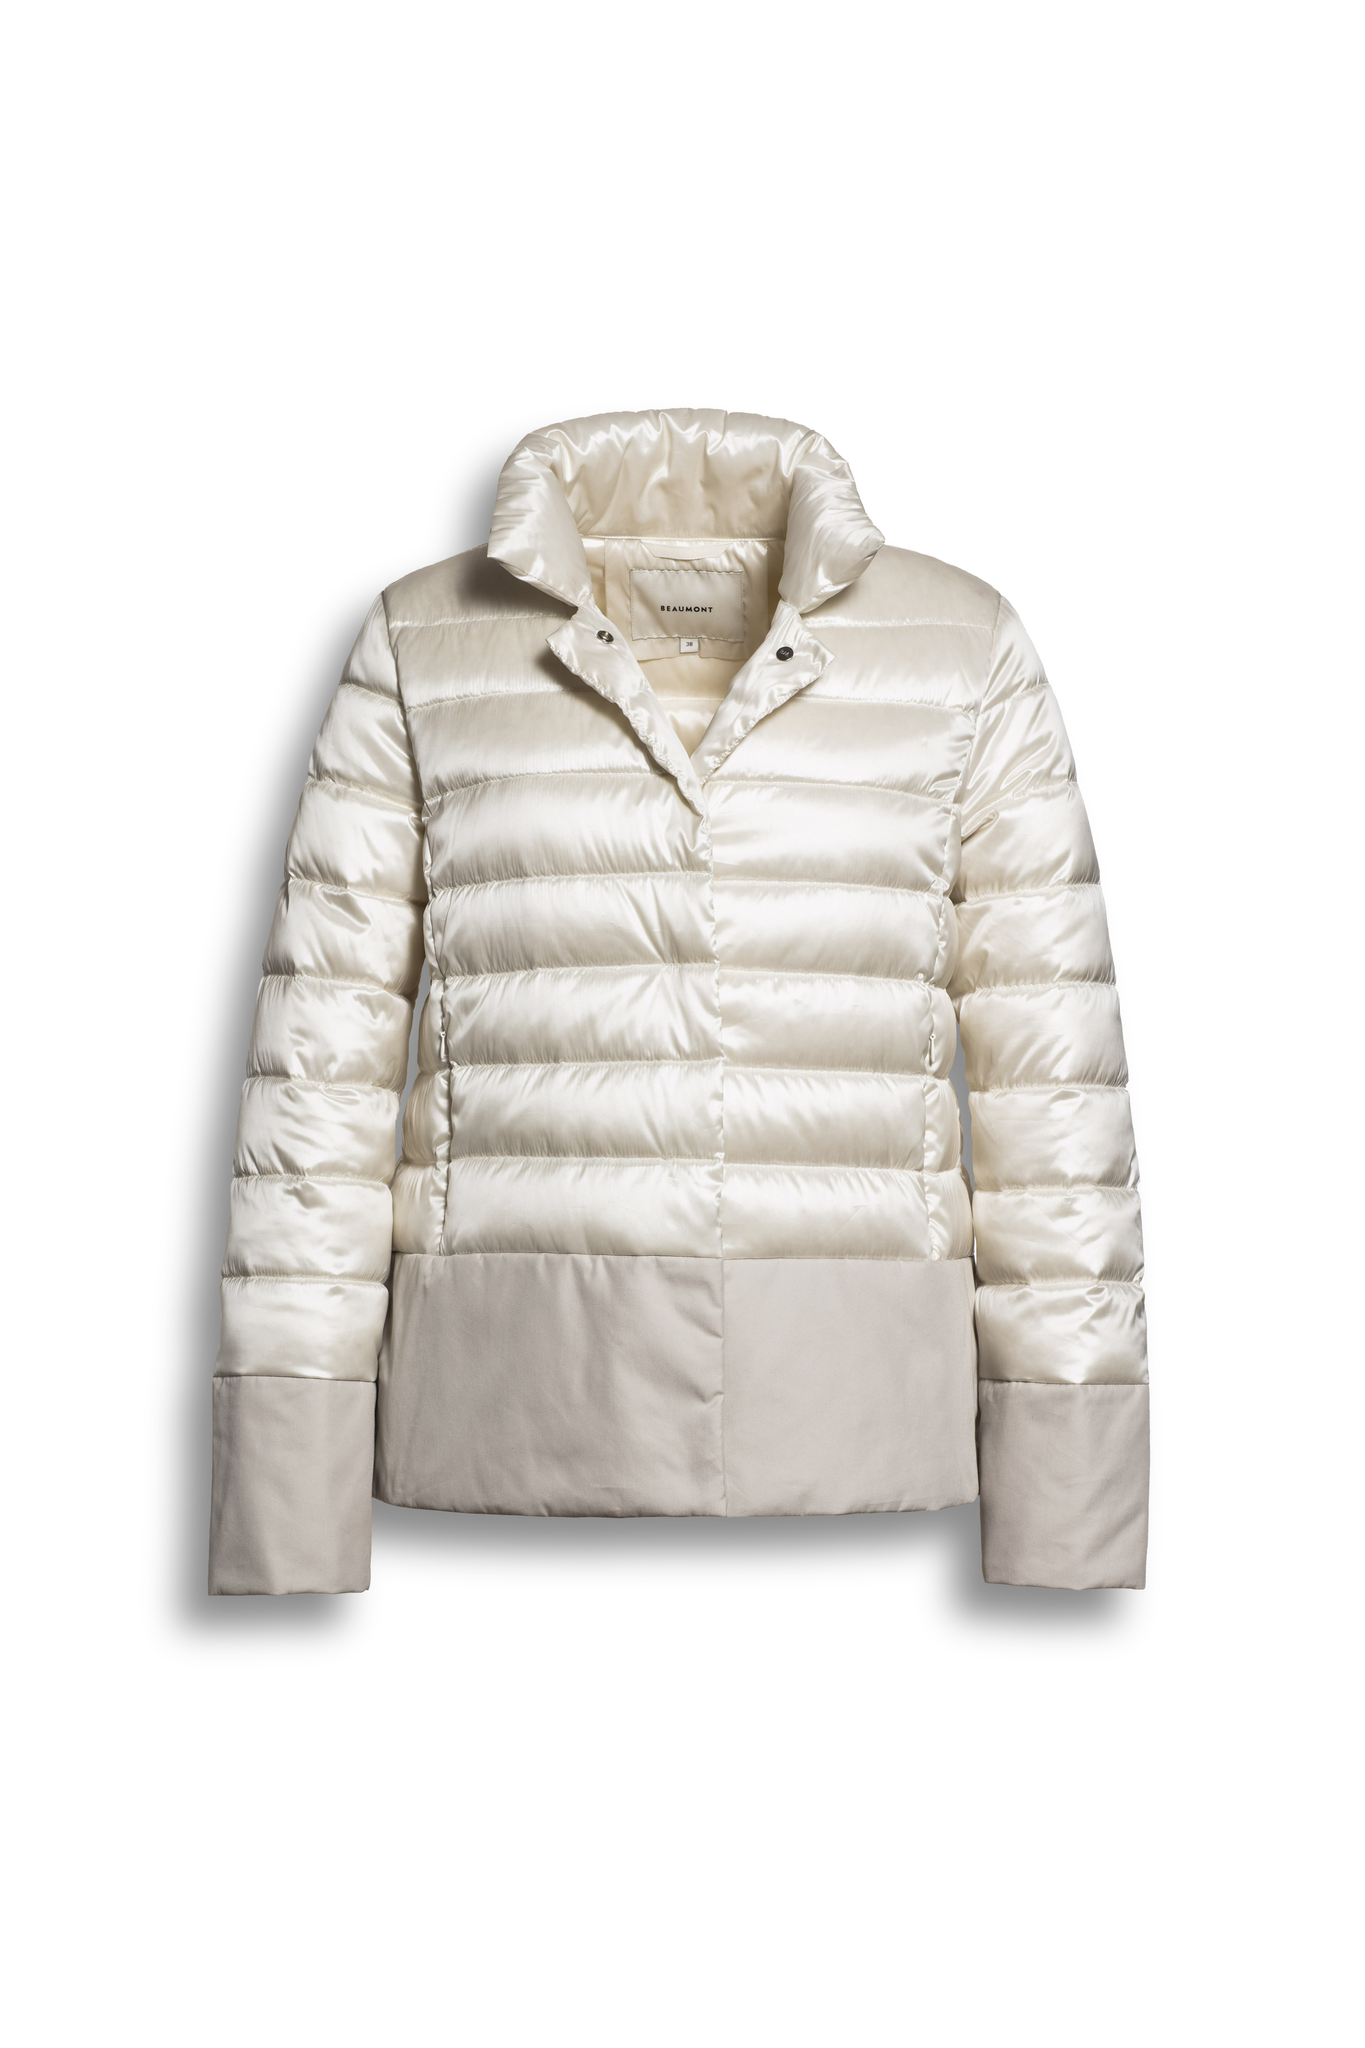 BEAUMONT Mix Changeant-Co Jacket Offwhite